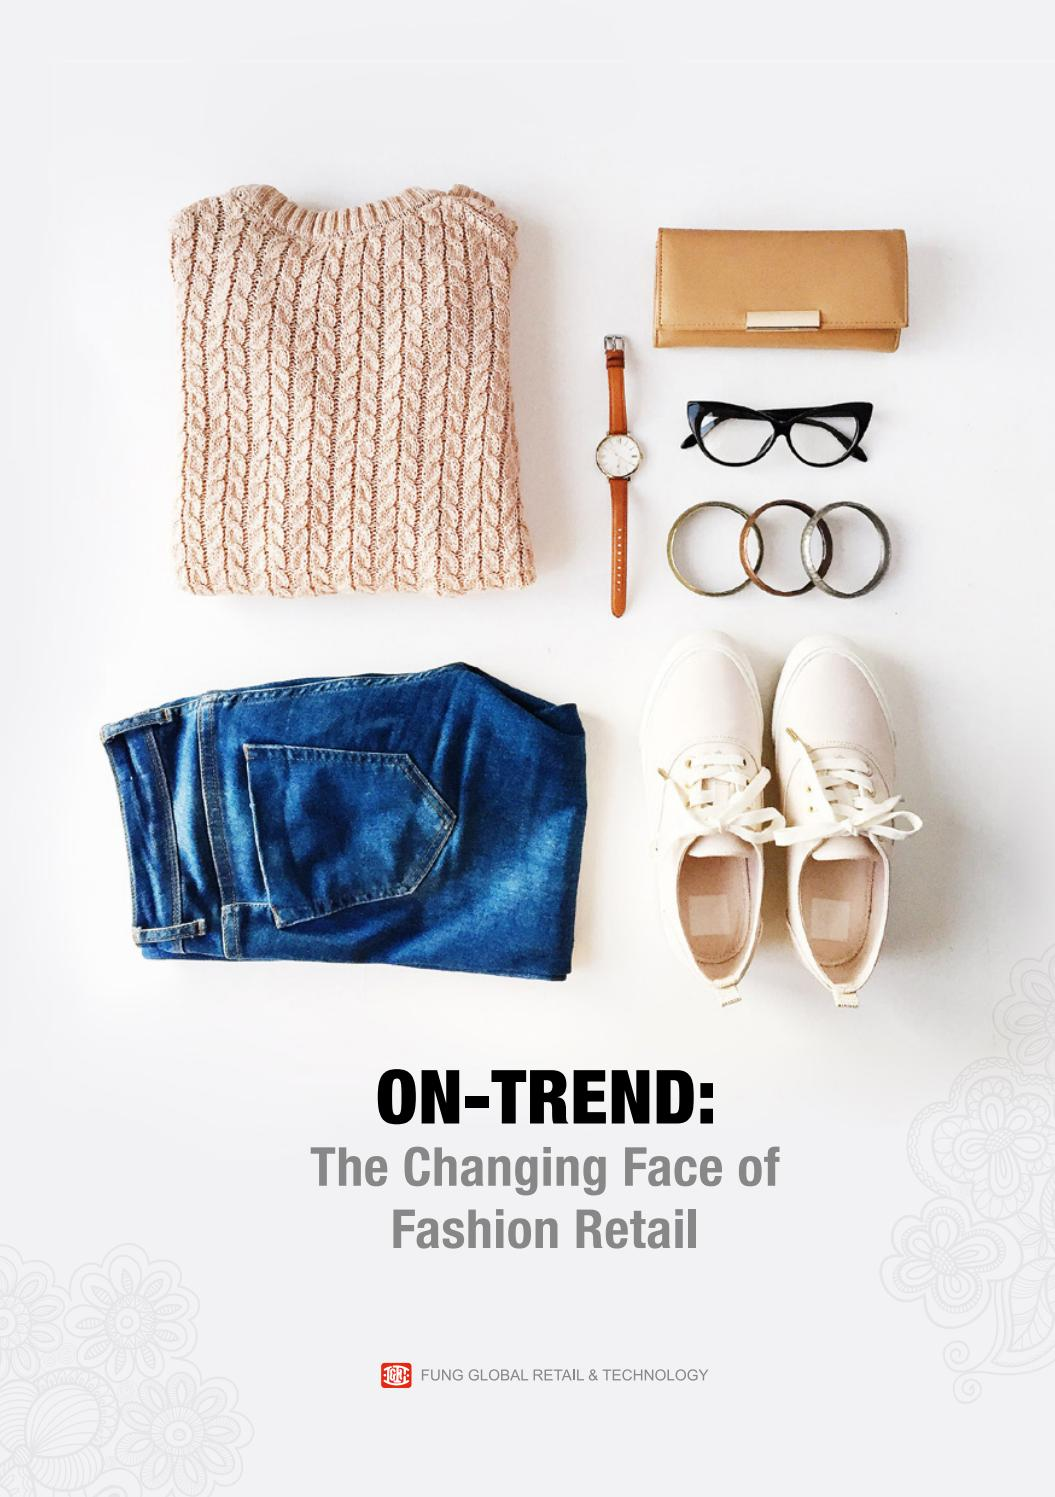 6d9f1d4f1c0 ON-TREND  The Changing Face of Fashion Retail by Fung Global Retail    Technology - issuu